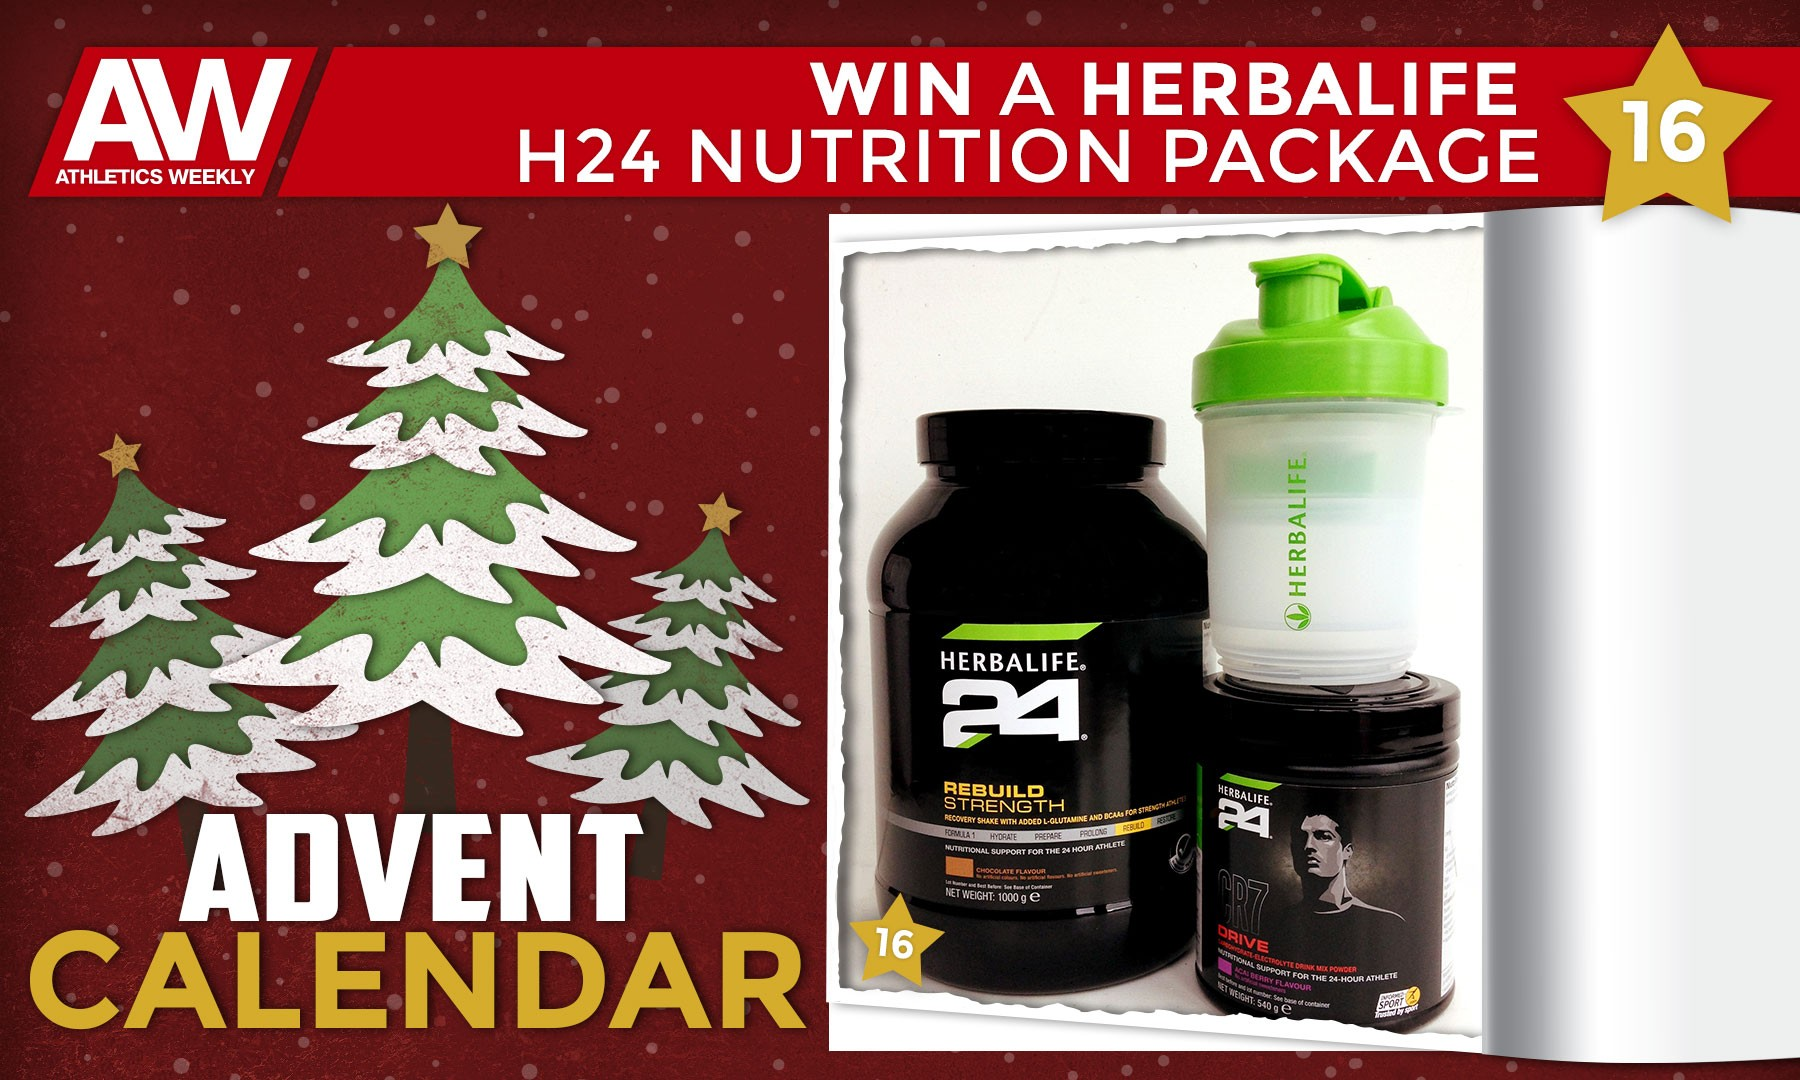 Win a Herbalife H24 nutrition package